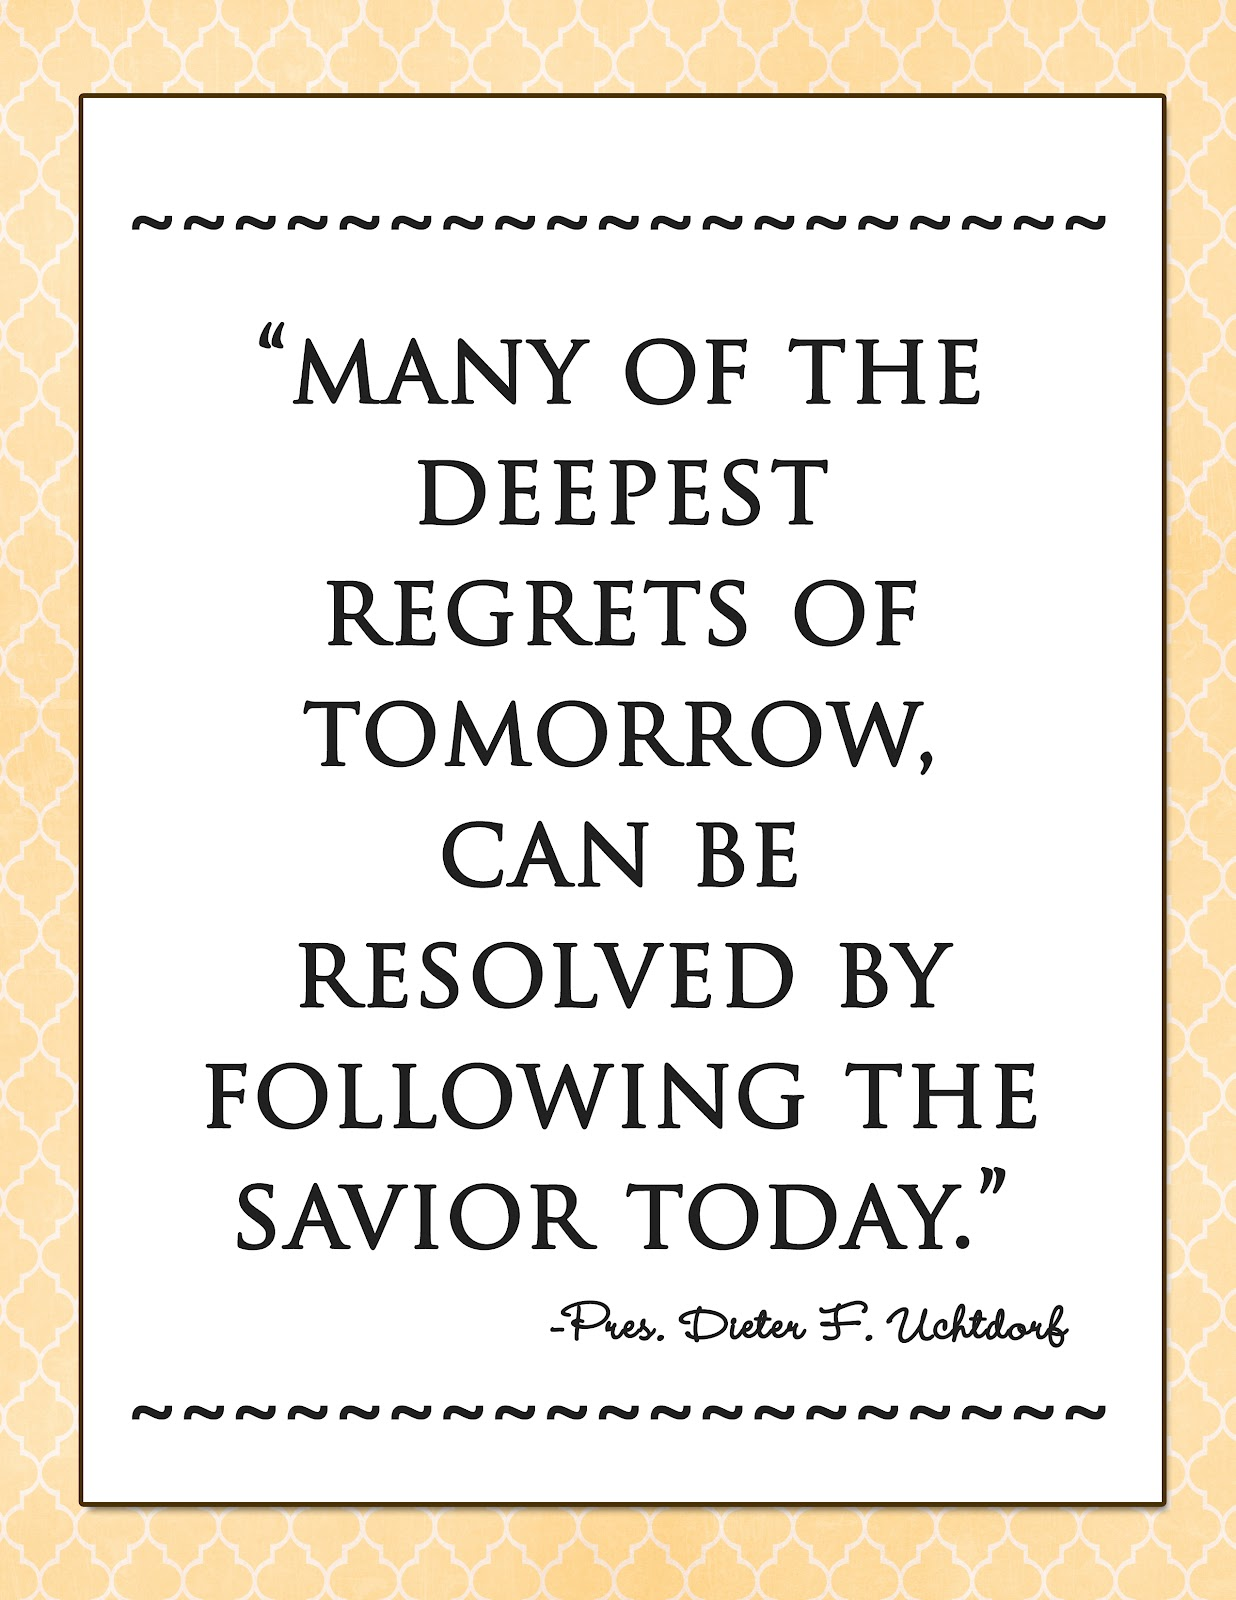 LDS New Year Quotes